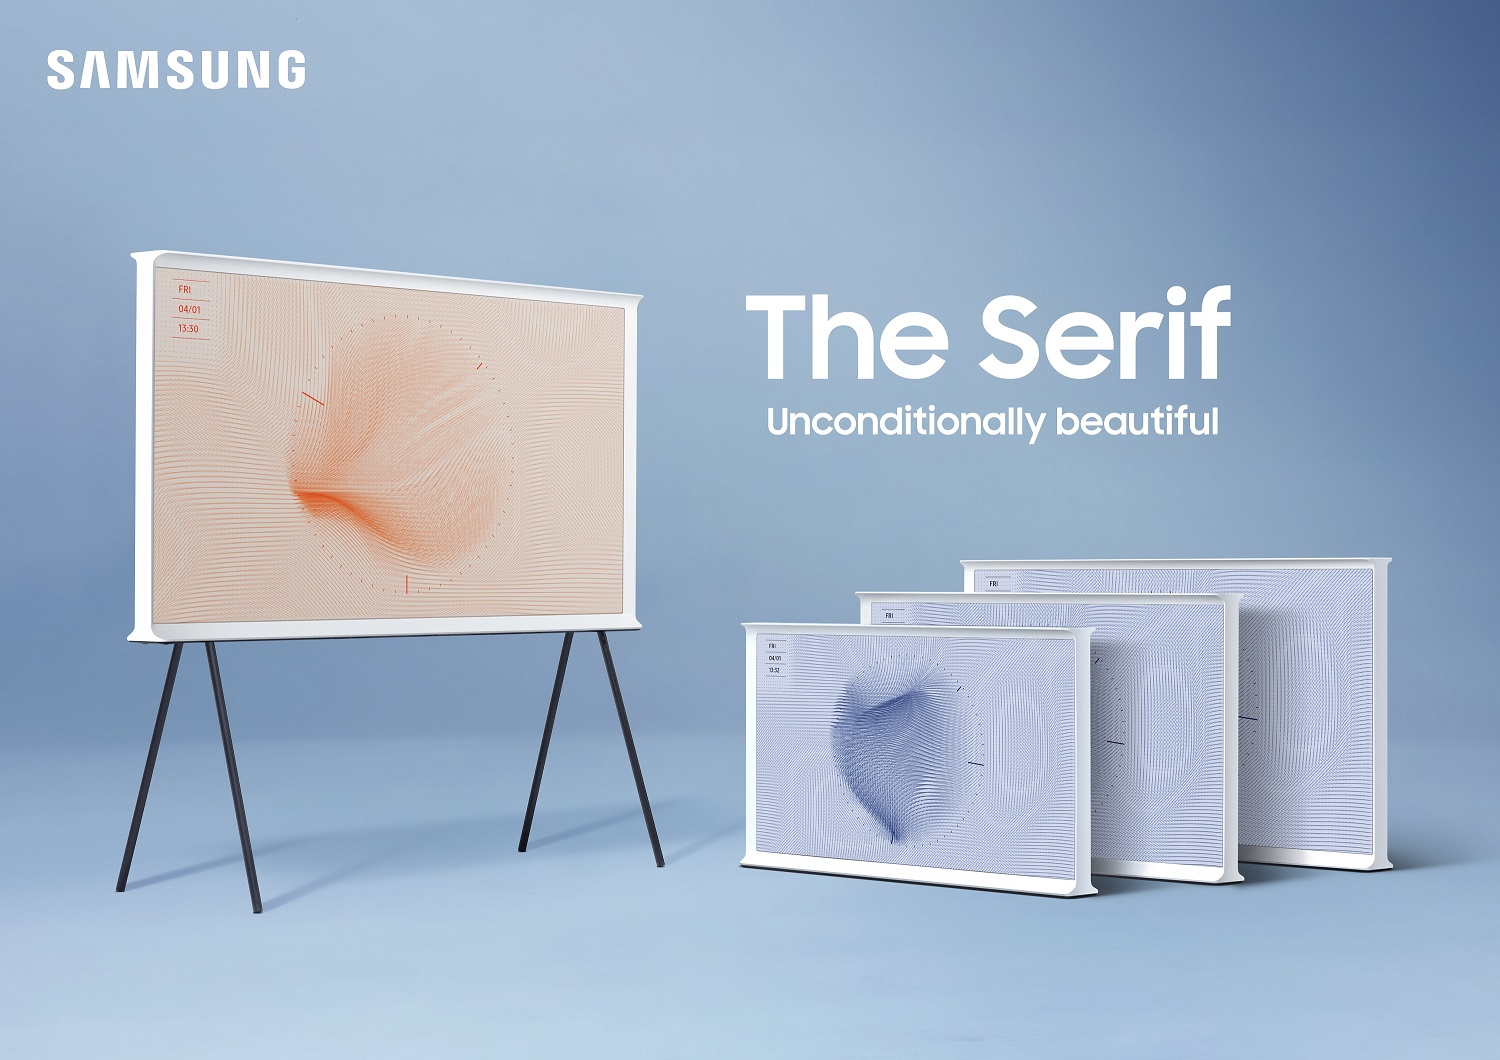 Samsung Elevates Malaysian Homes with the Arrival of its 2020 QLED, The Sero, The Serif & The Frame TVs